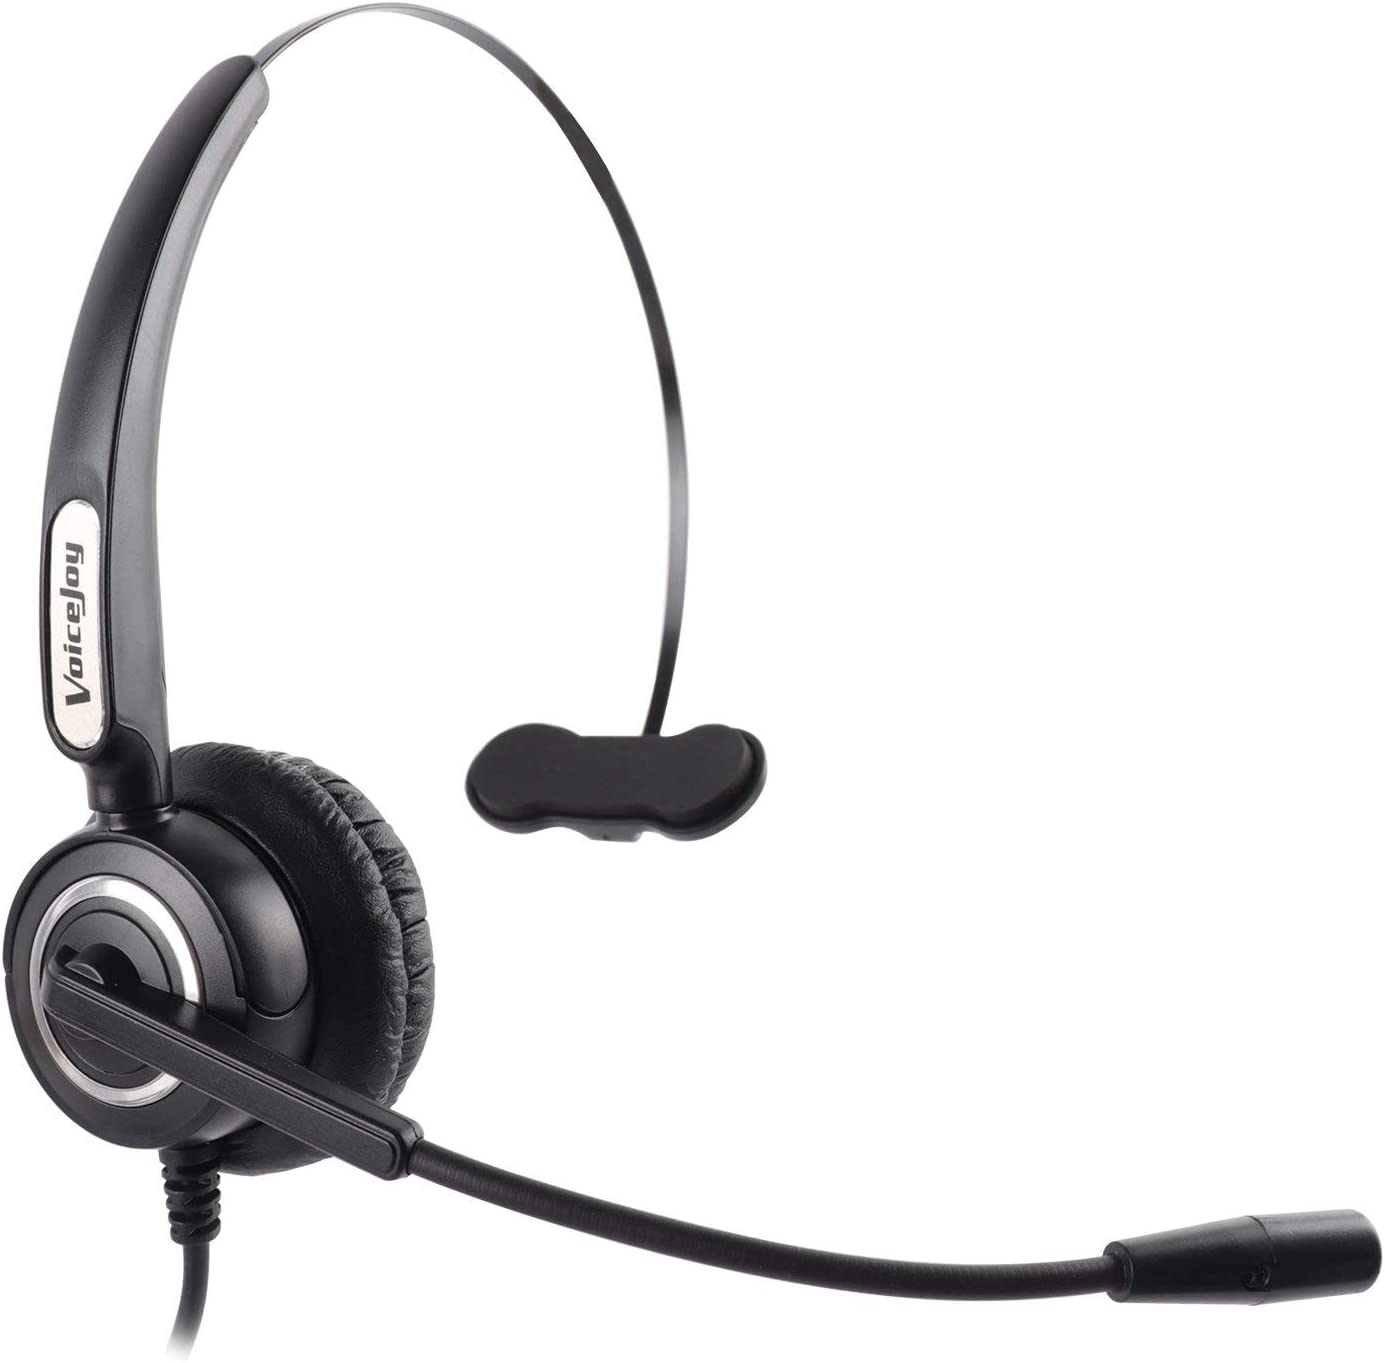 Call Center Corded Monaural Headset